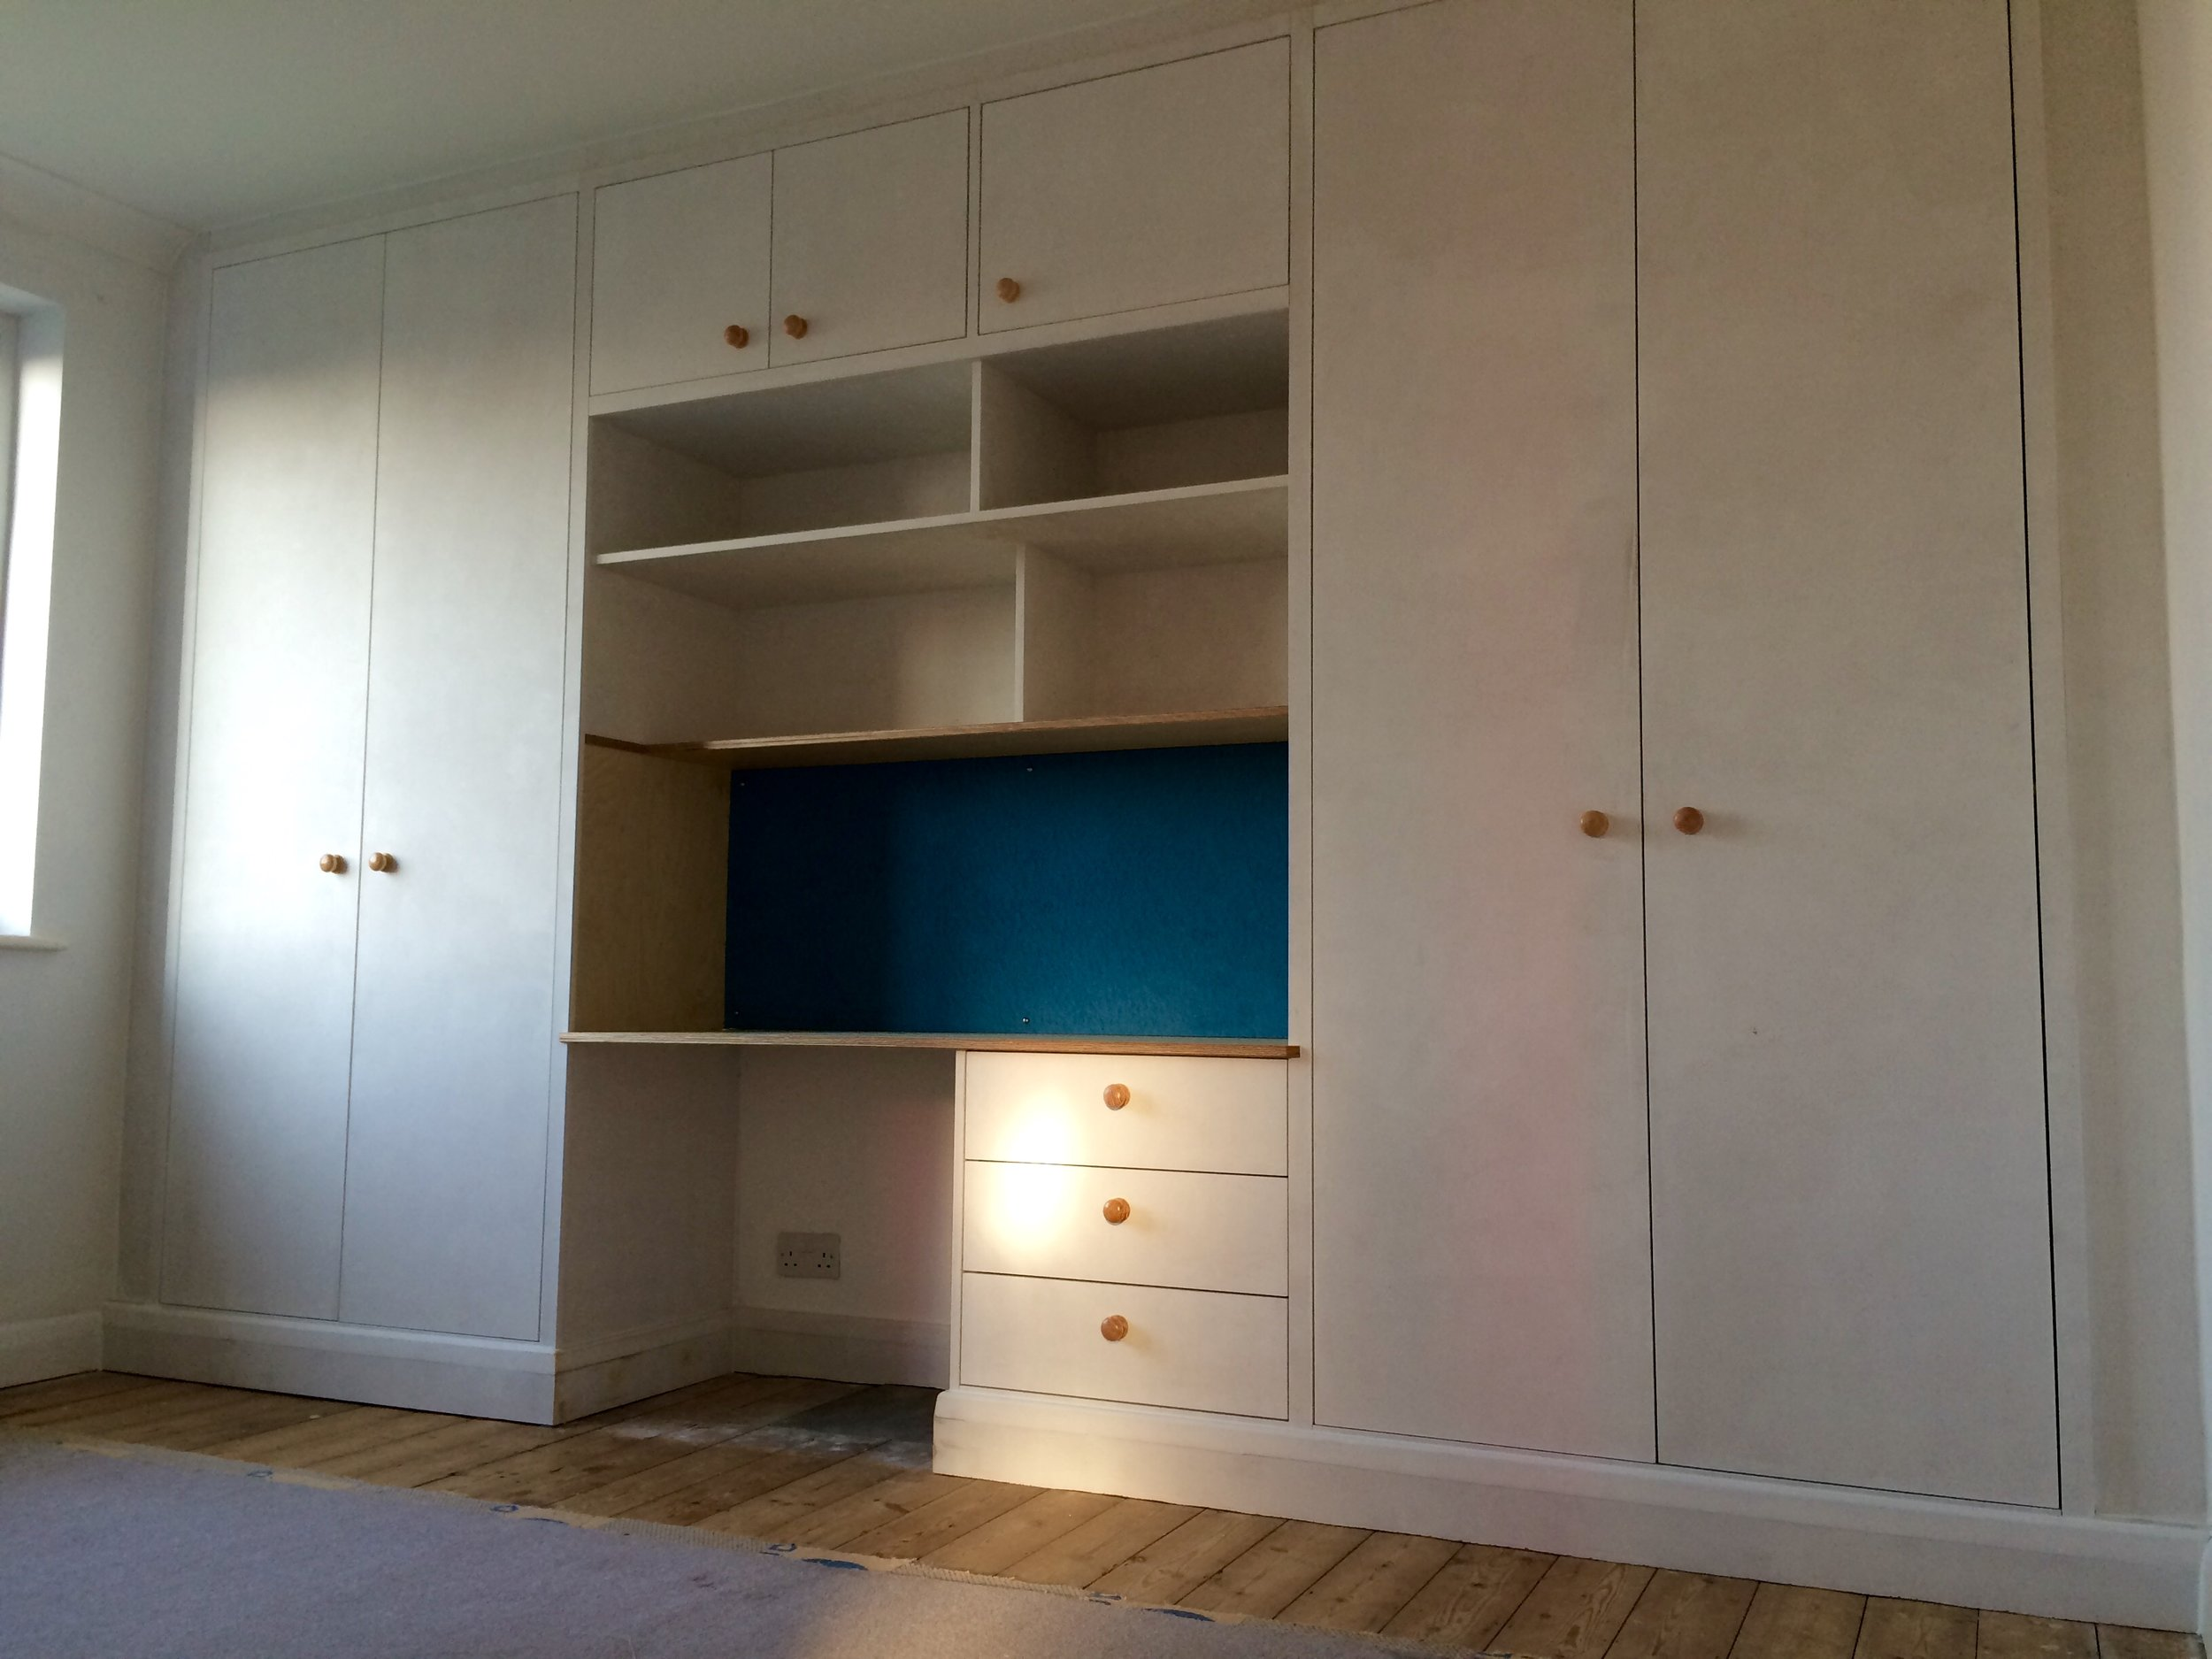 Functional - These wardrobes have melamine faced interiors, with primed doors and trim for the client to decorate. The desk area in the centre is made from prefinished birch plywood and a blue pin board adorns the rear.